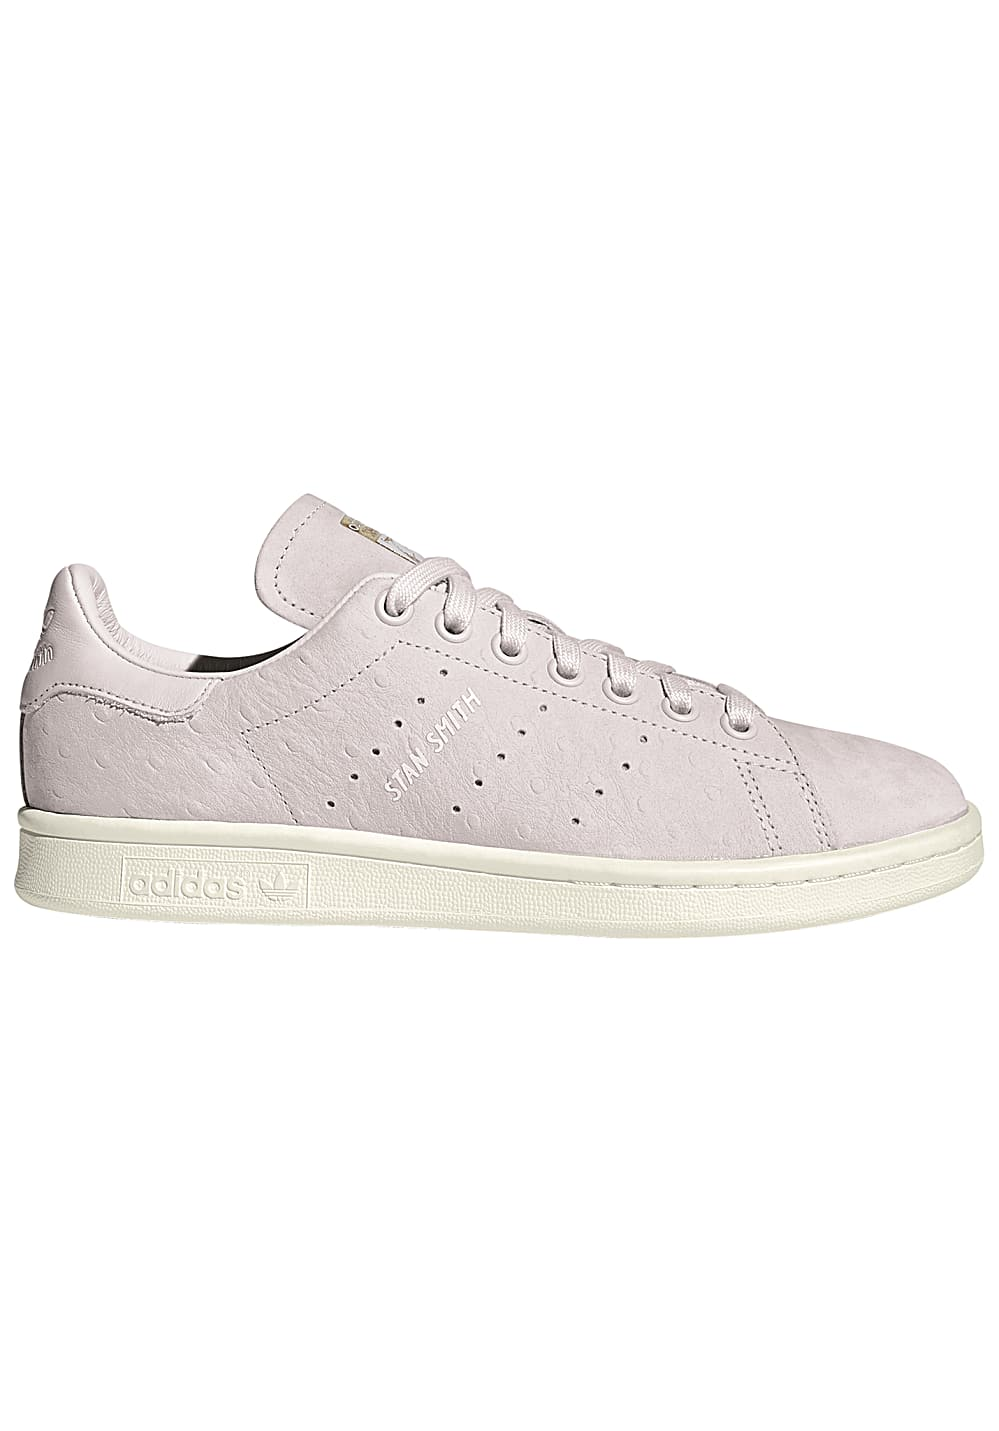 cheaper f8b3a 18387 ADIDAS ORIGINALS Stan Smith - Sneakers for Women - Beige